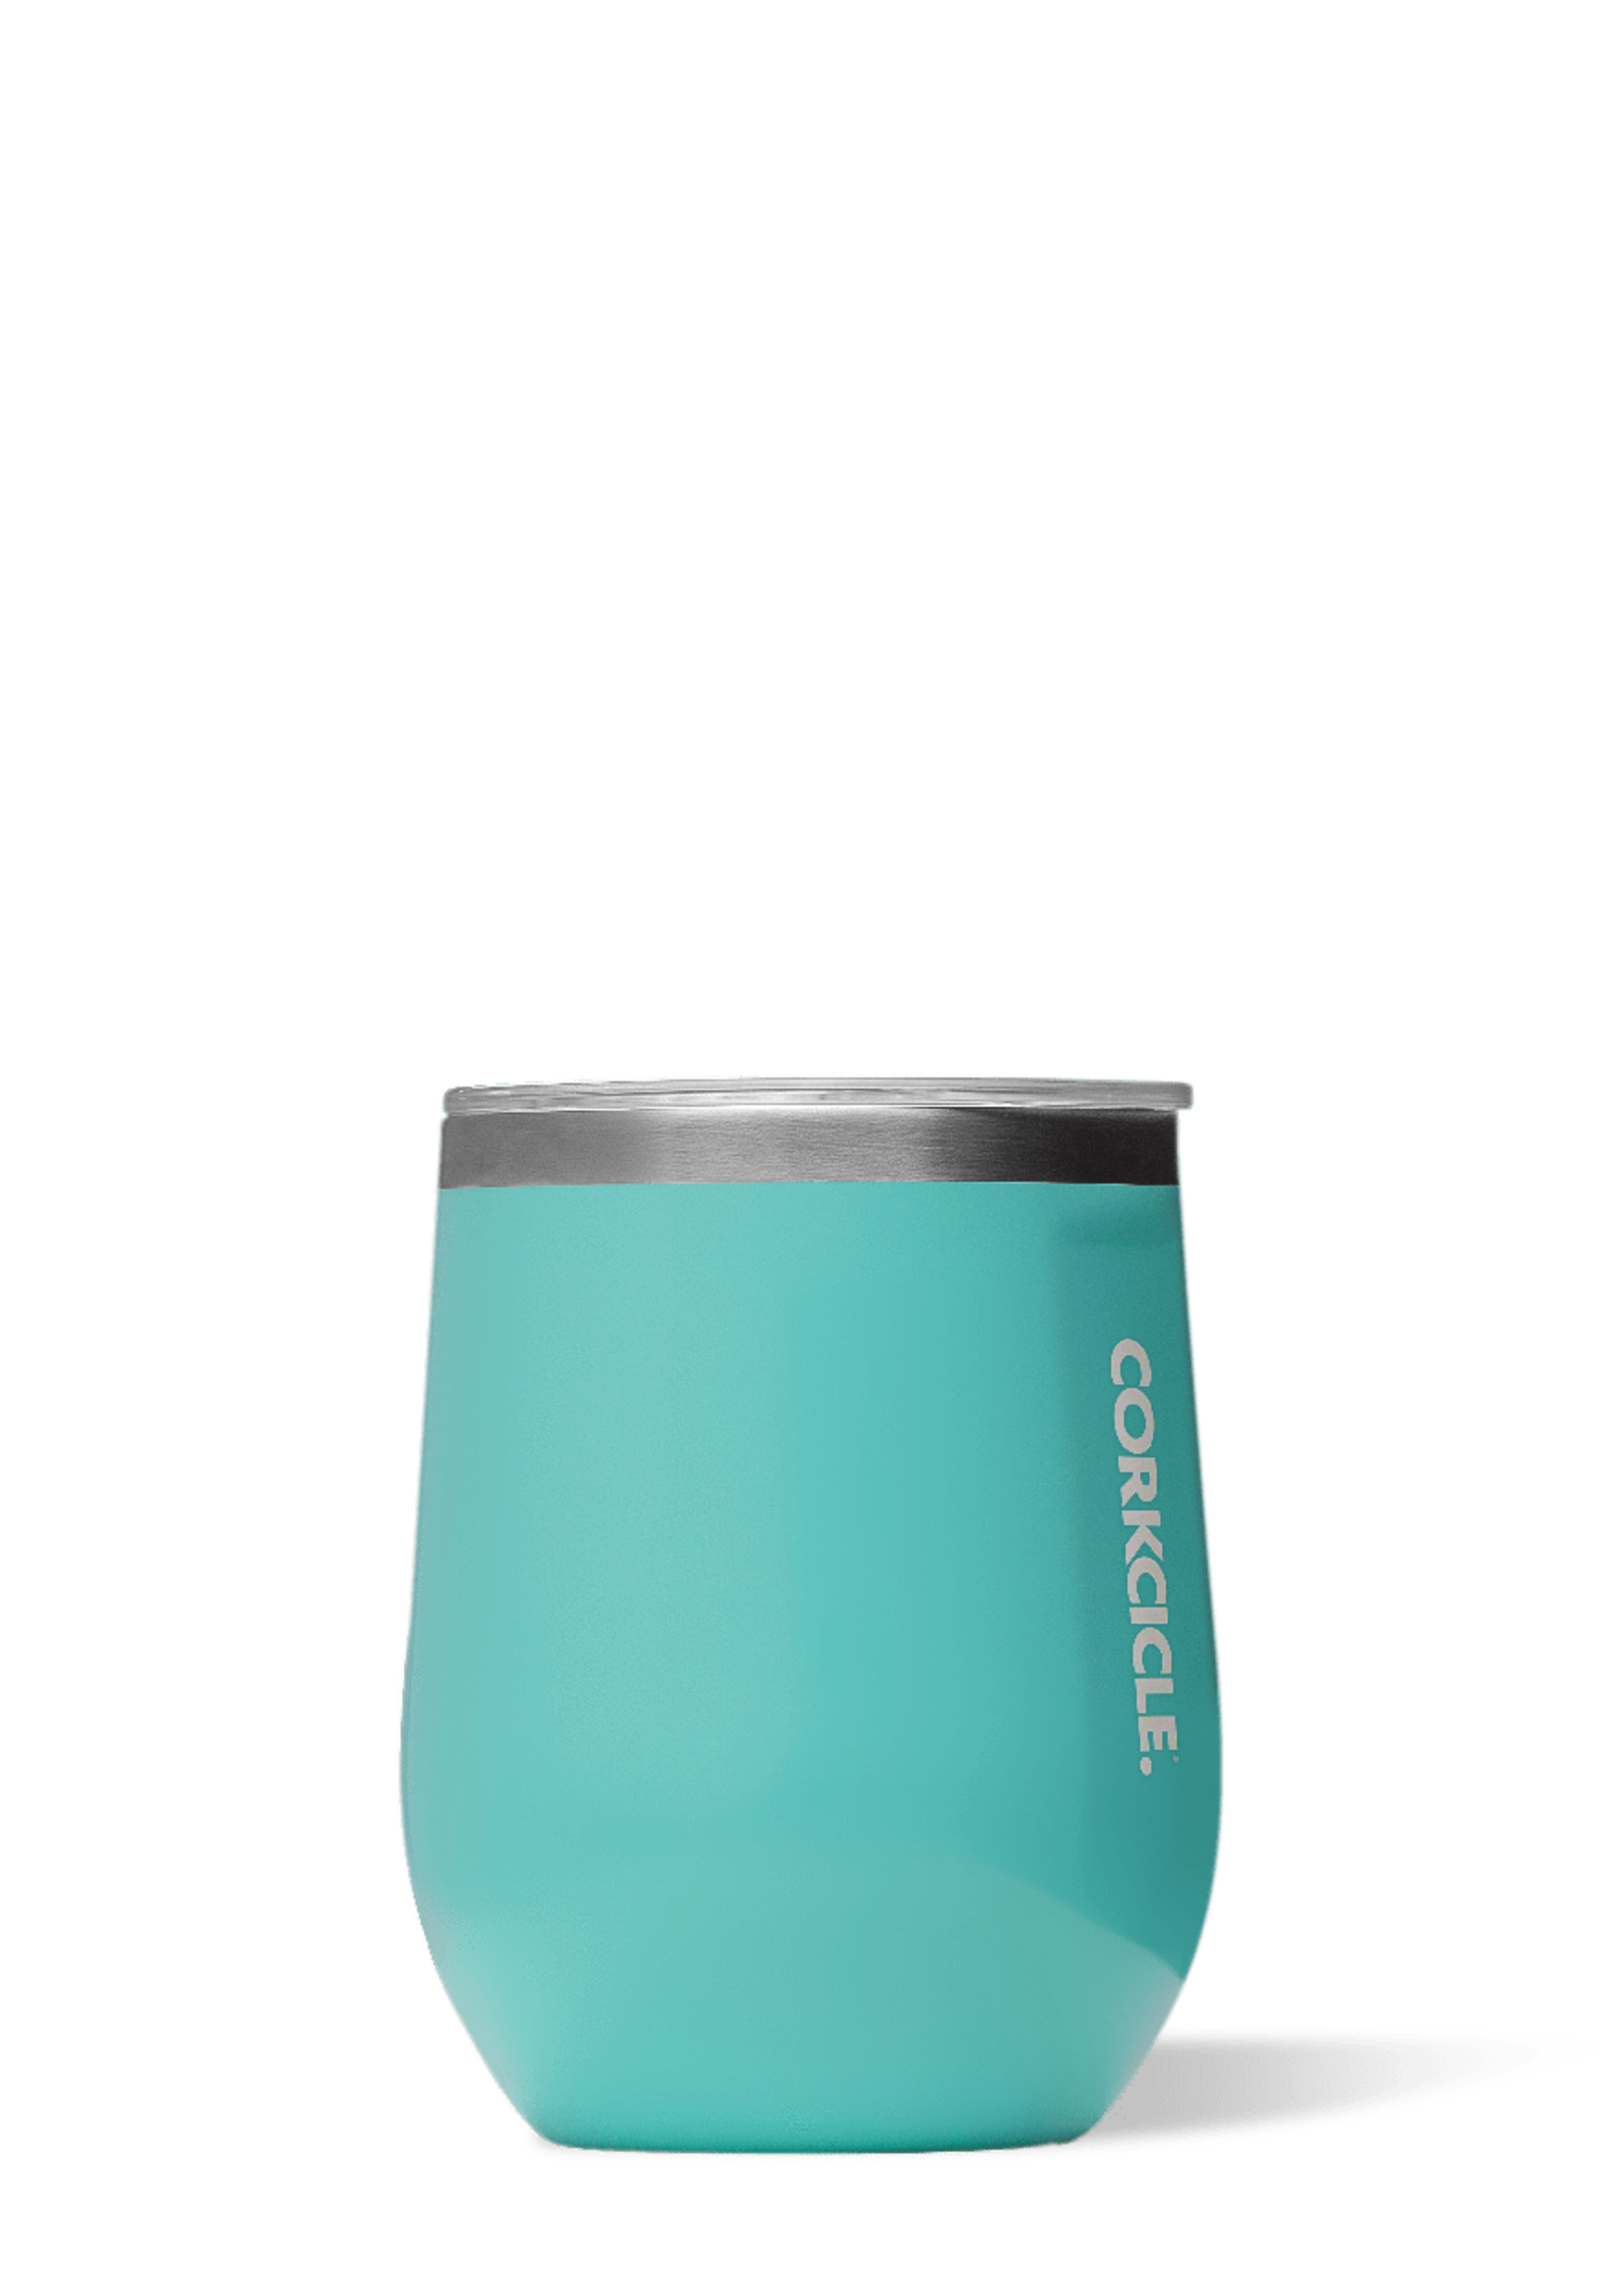 CORKCICLE CORKCICLE 12 OZ  STEMLESS TUMBLER - TURQUOISE